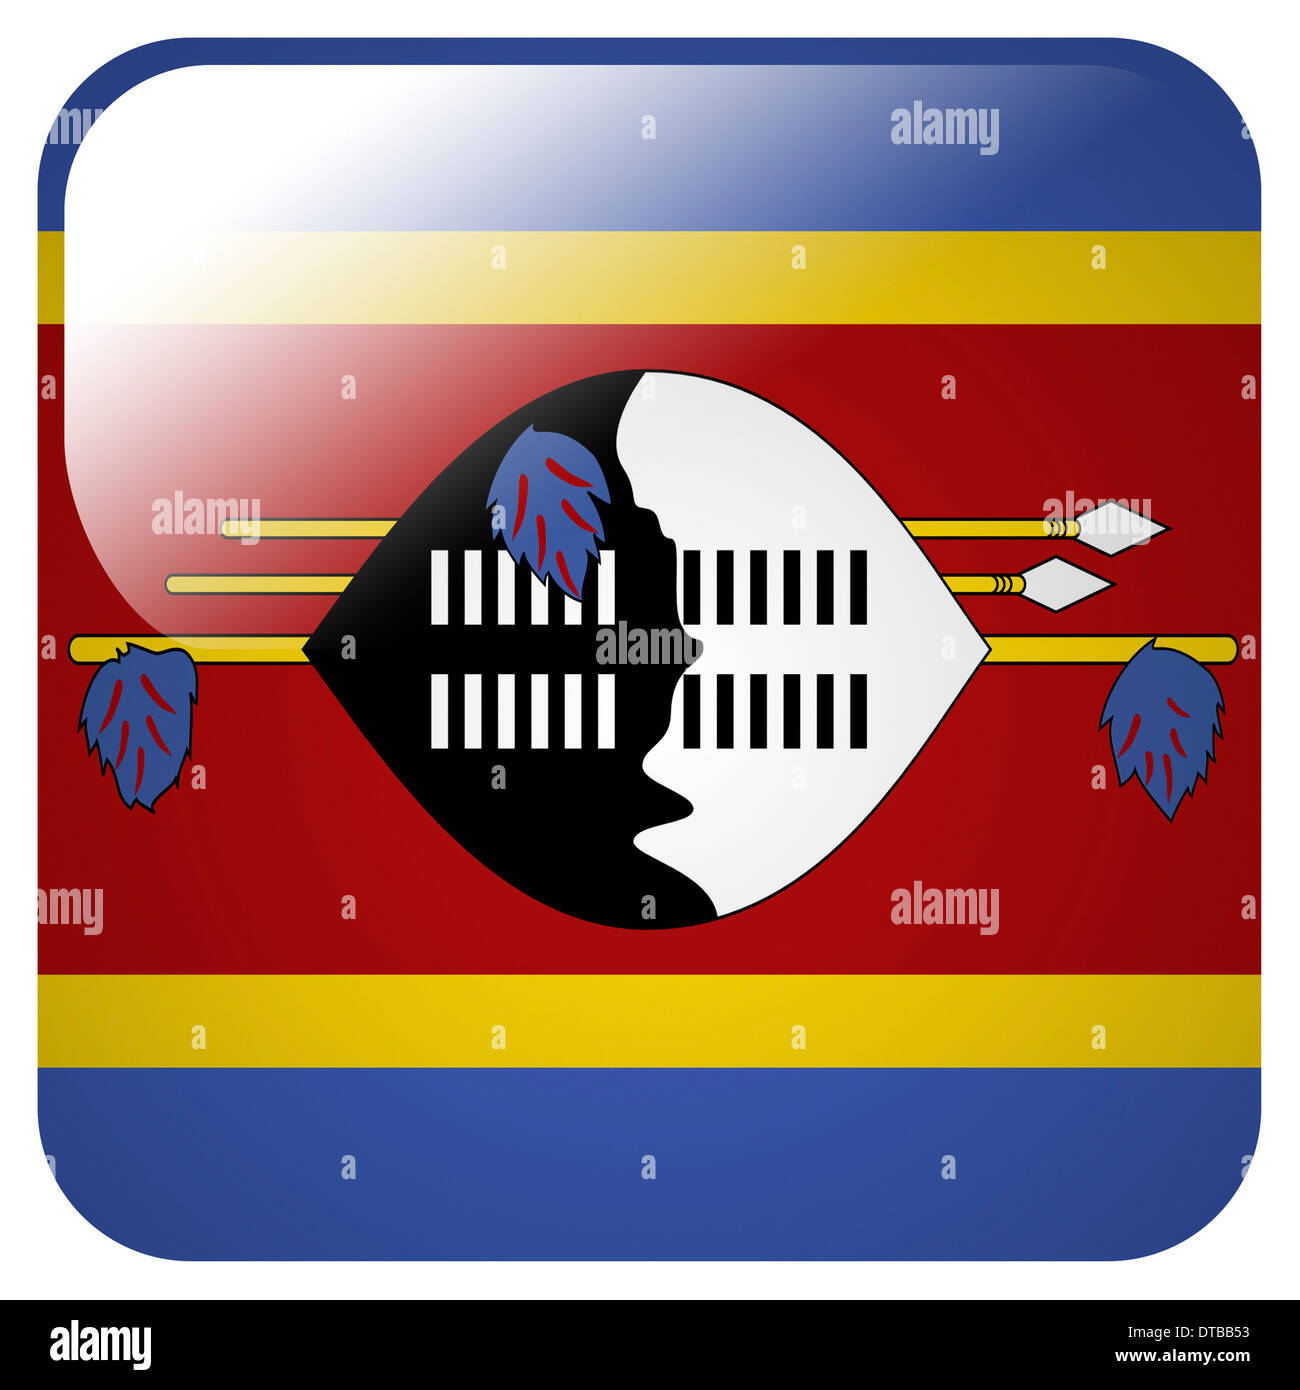 Glossy icon with flag of Swaziland Stock Photo